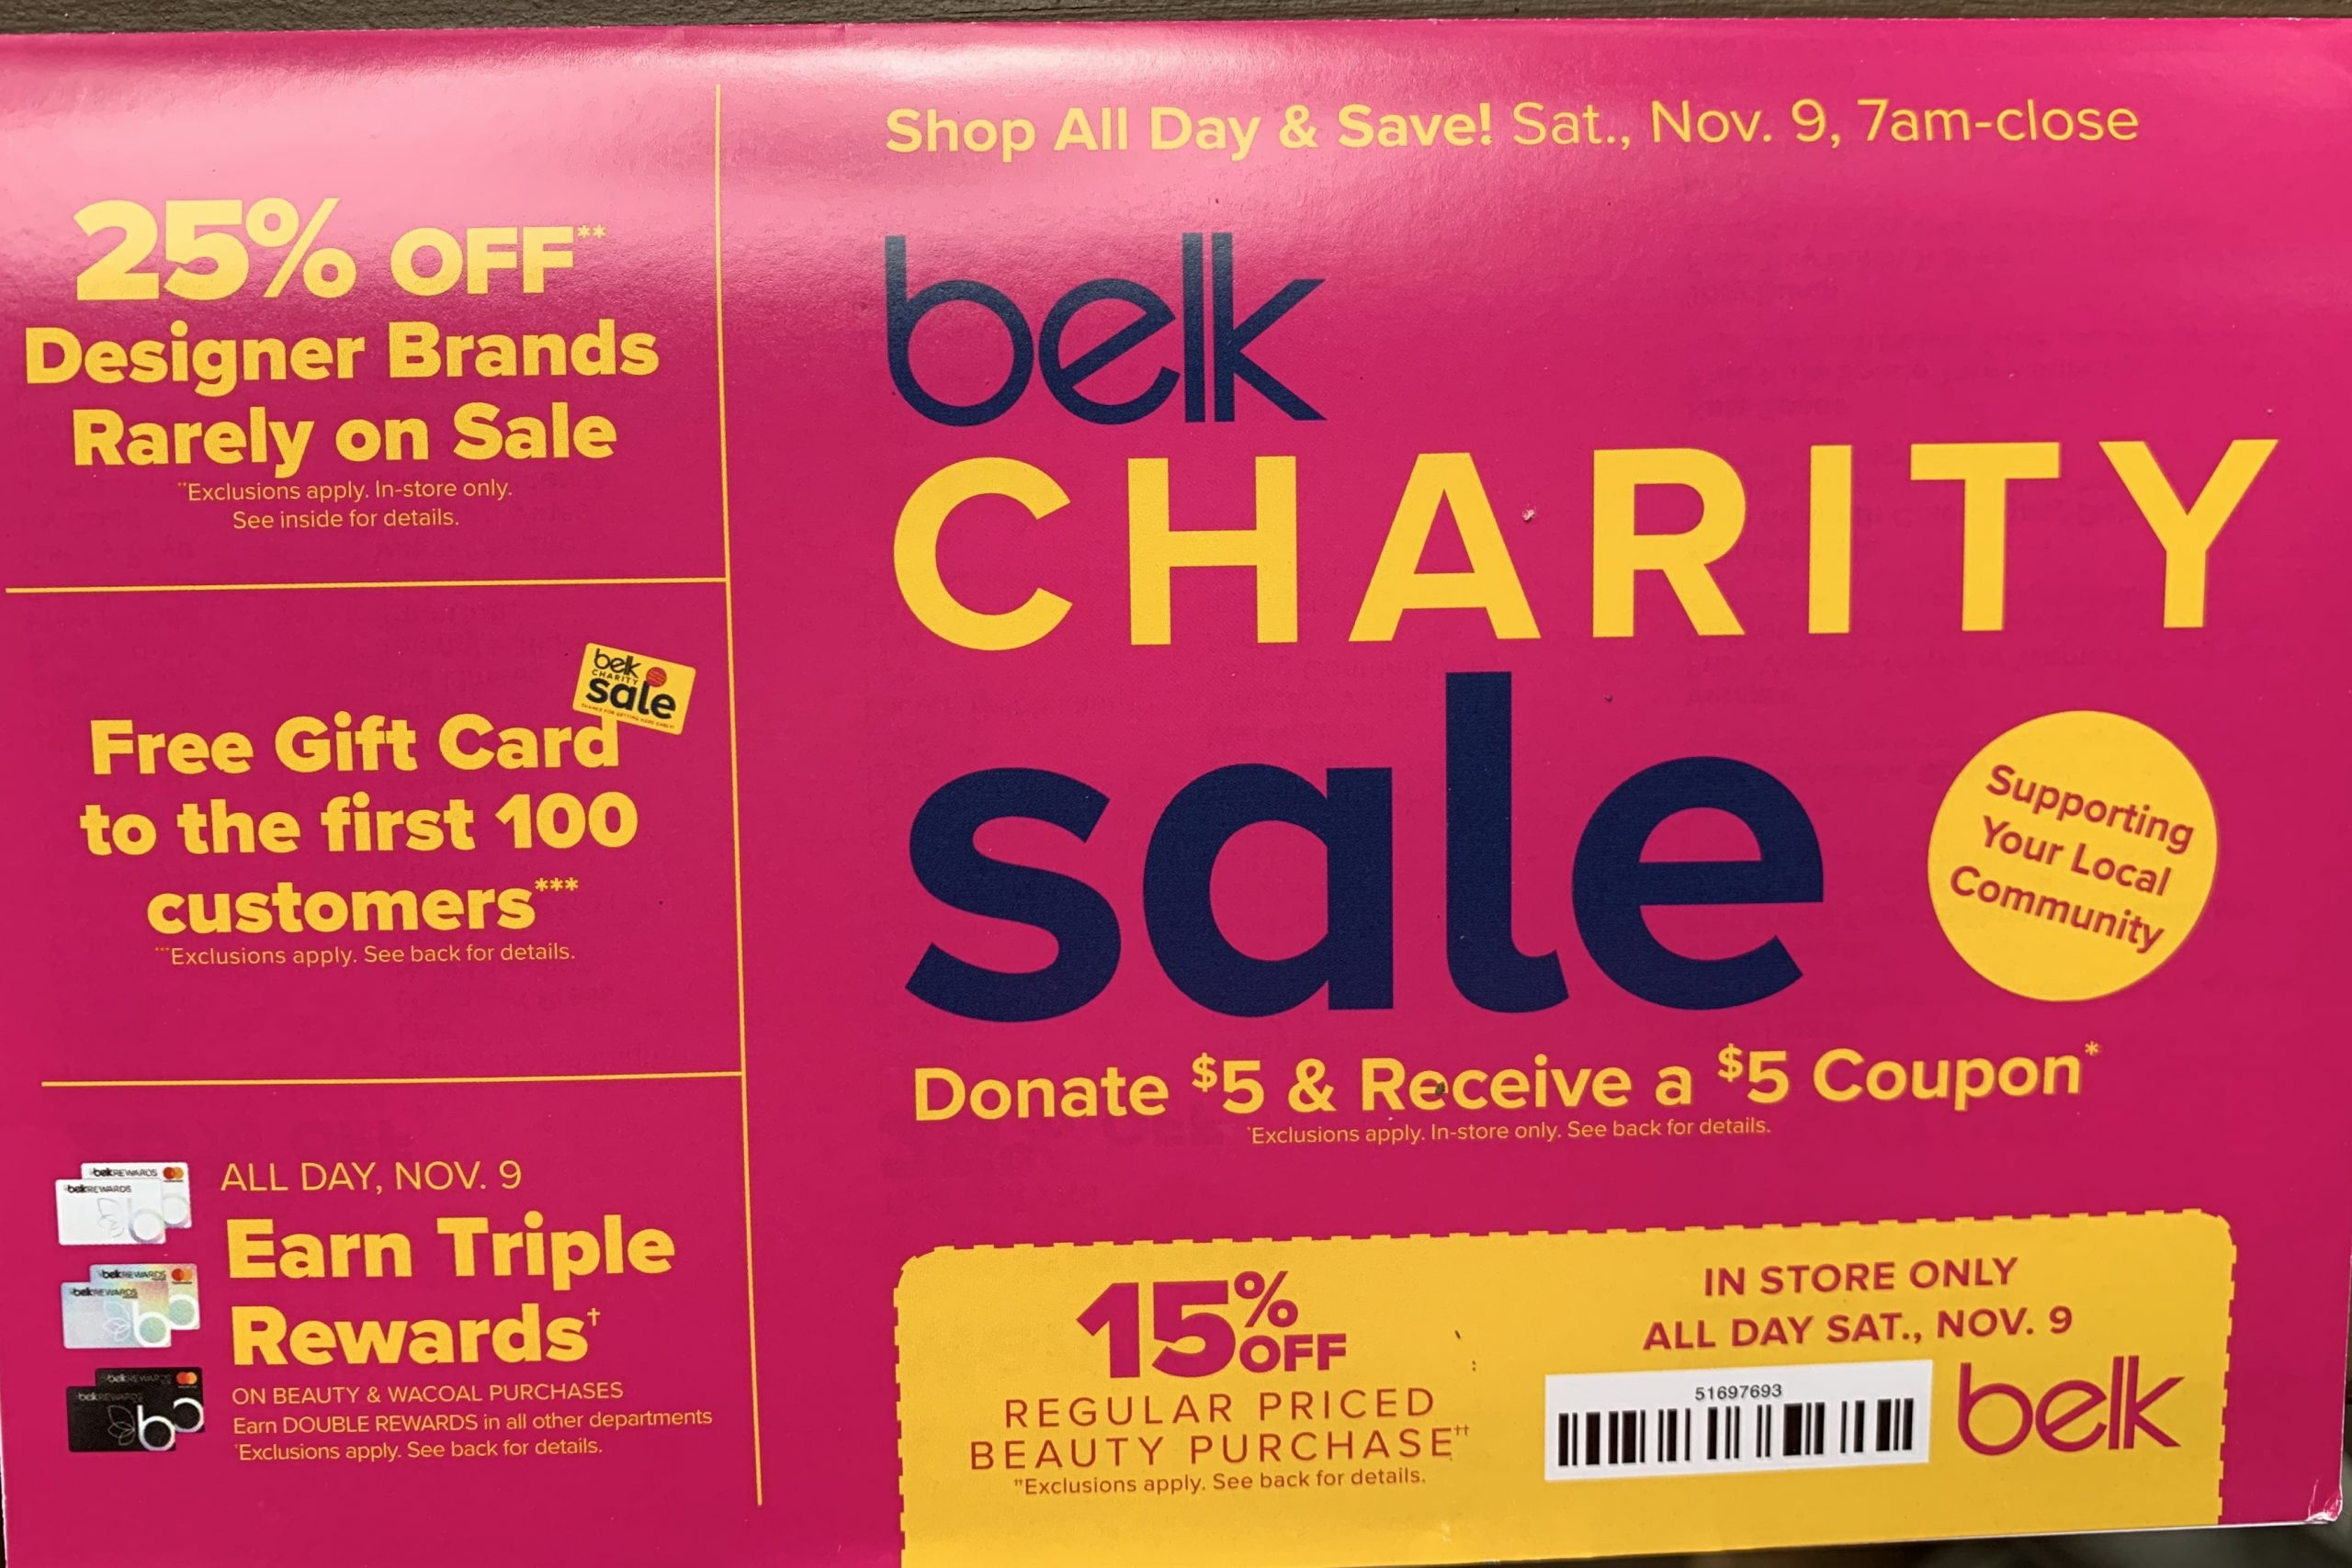 Belk Charity Sale – Donate $5.00 get a $5.00 Coupon